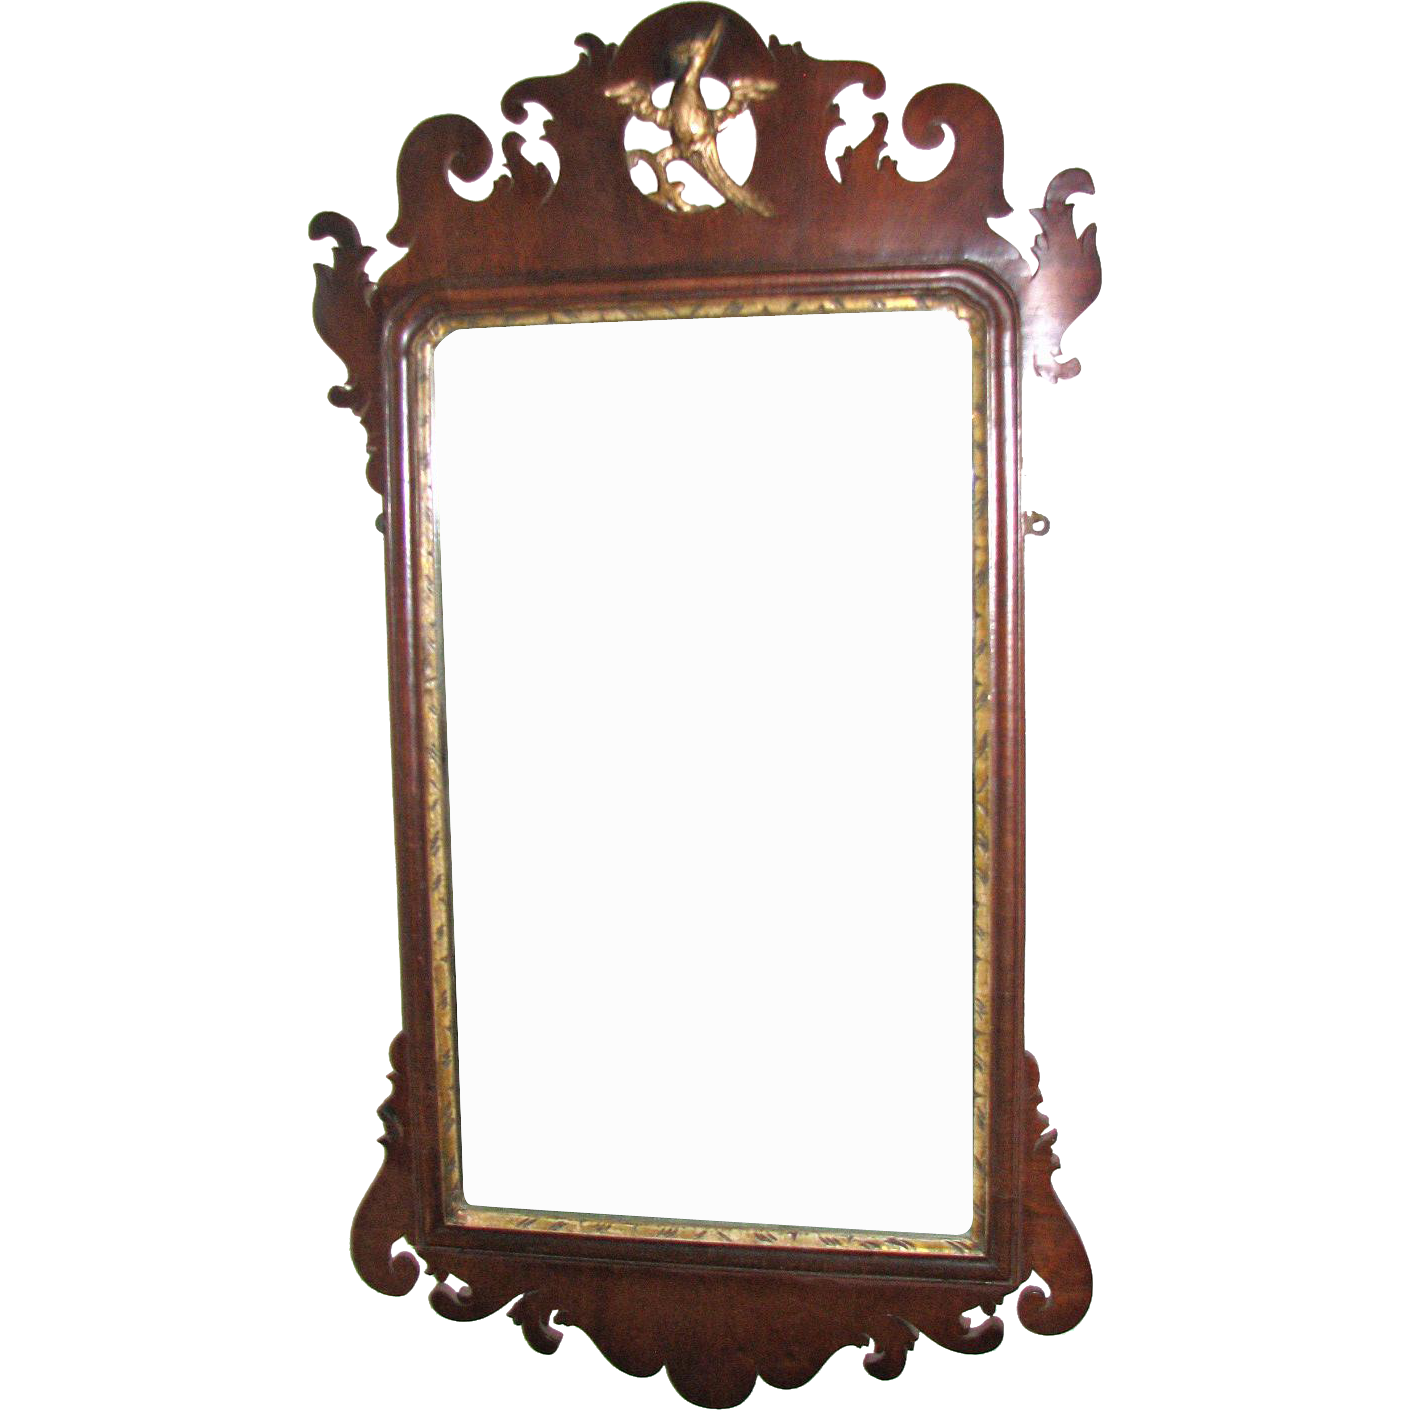 Antique Scrollimgs: Antique American Chippendale Scroll-Frame Mirror, 18th